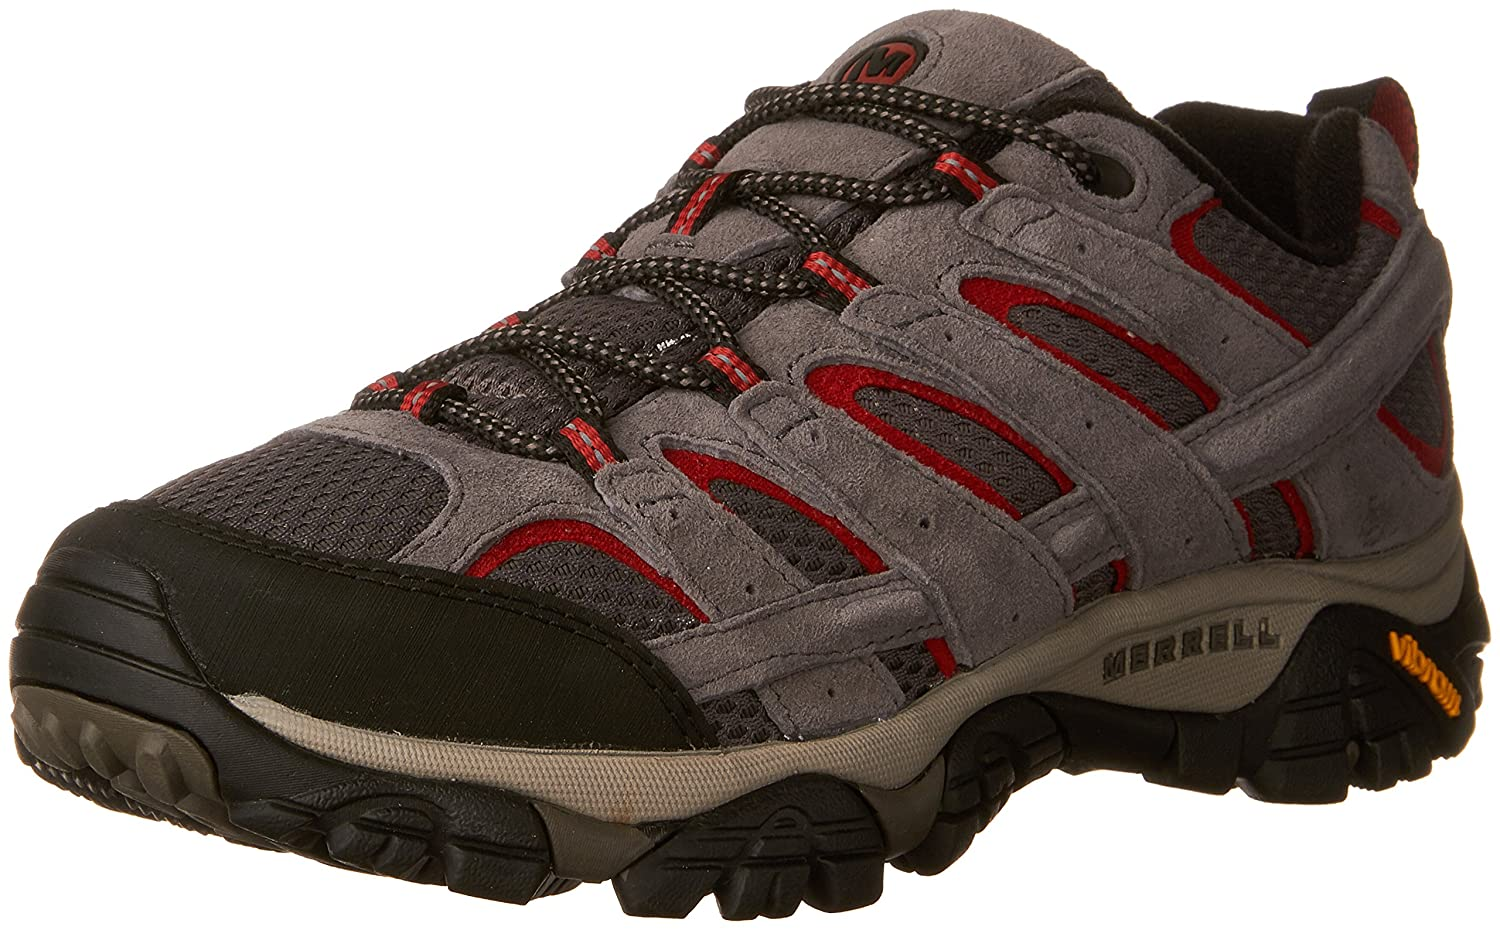 Merrell Men's Moab 2 Vent Hiking Shoe 8.5 2E US|Charcoal Grey